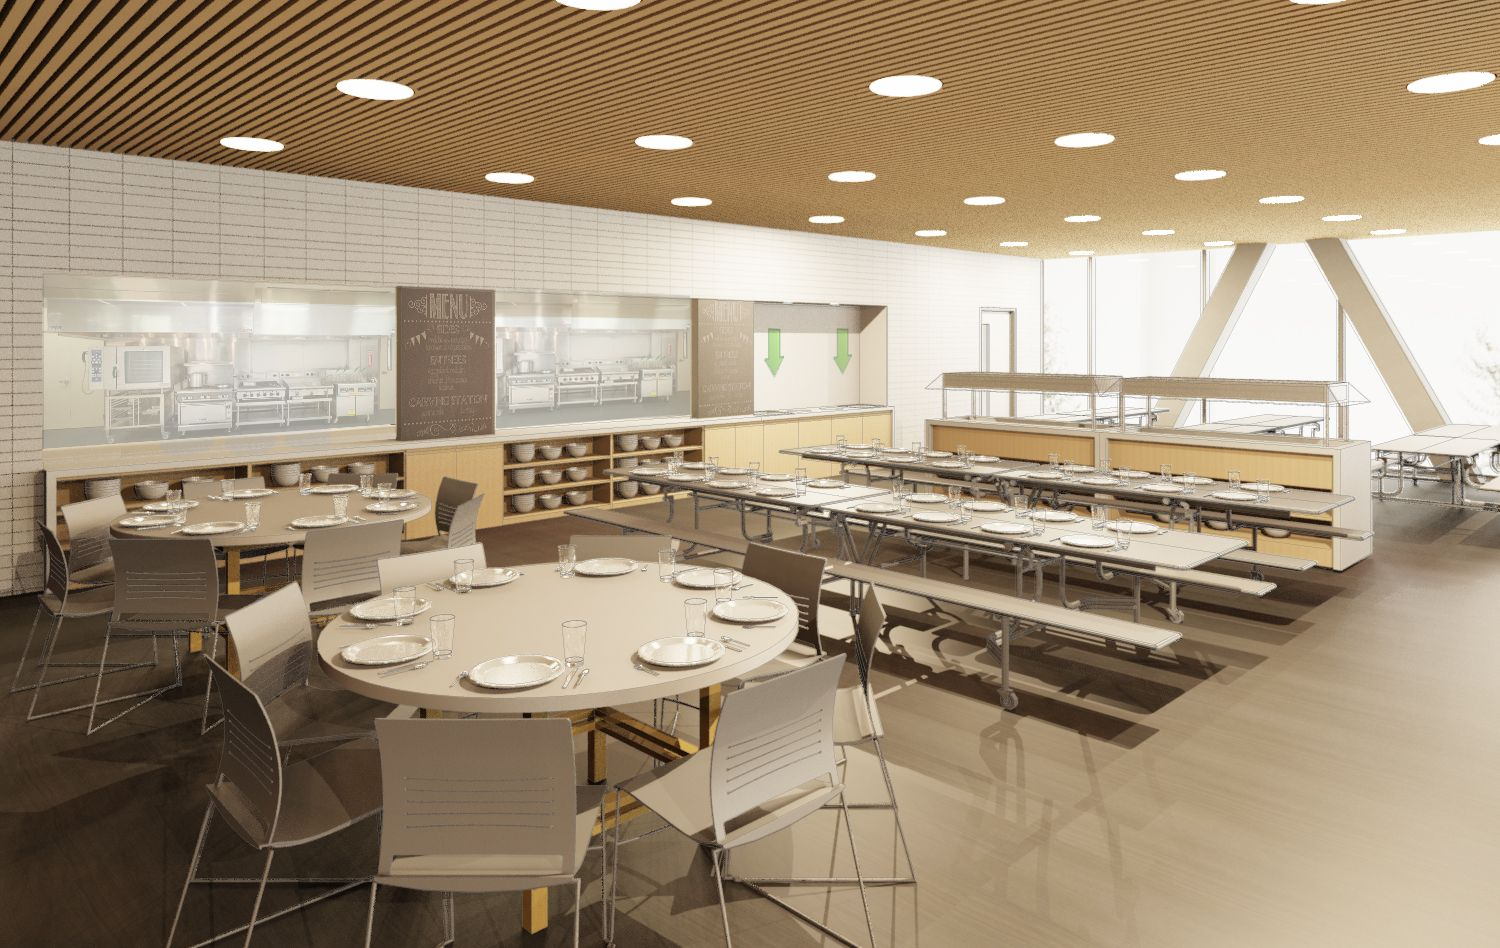 Common Room-Cafeteria